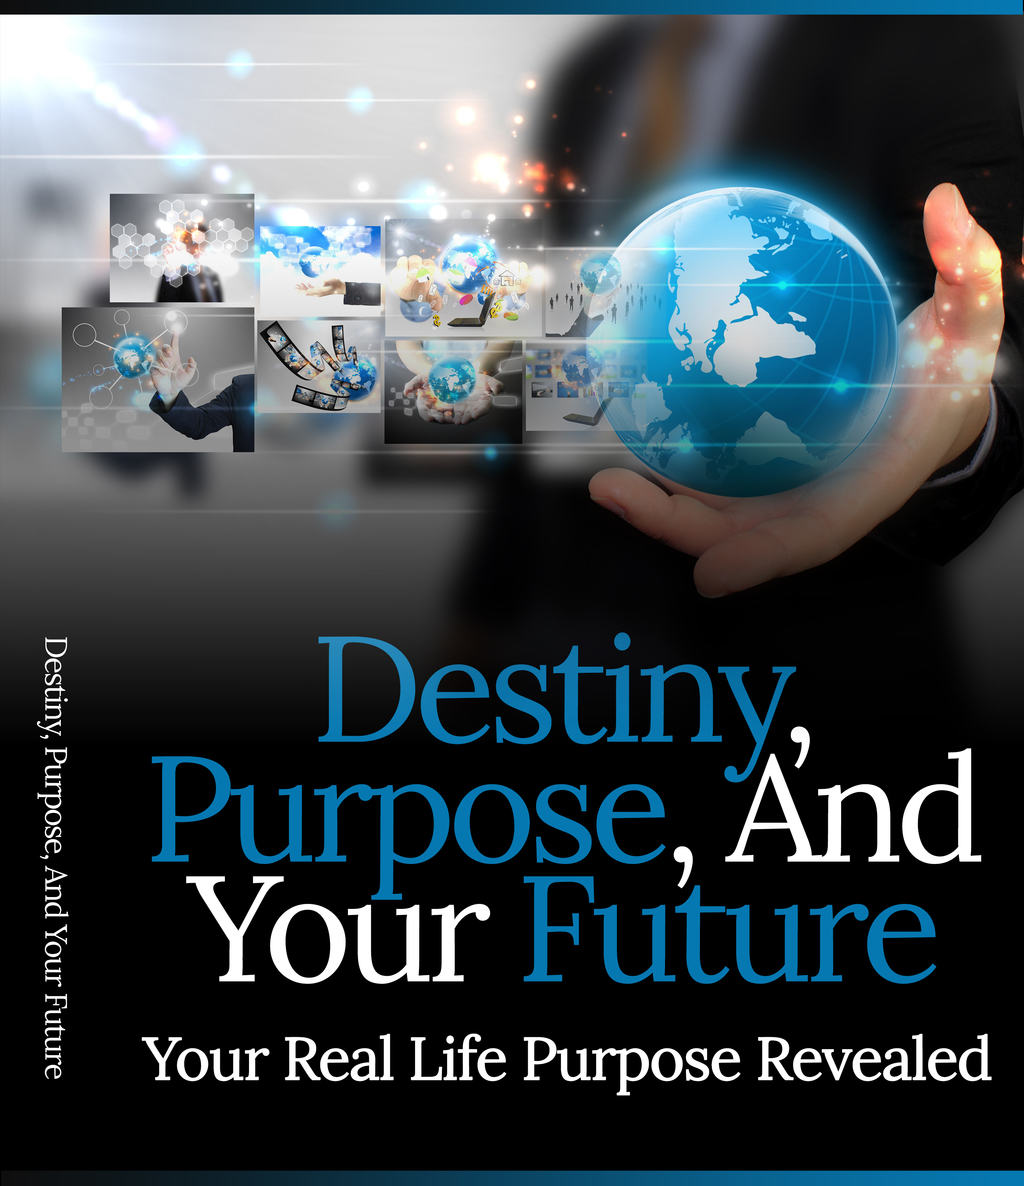 Destiny Purpose And Your Future 1 - The Lighter Side - Day Twenty One - Prosperity Knowledge